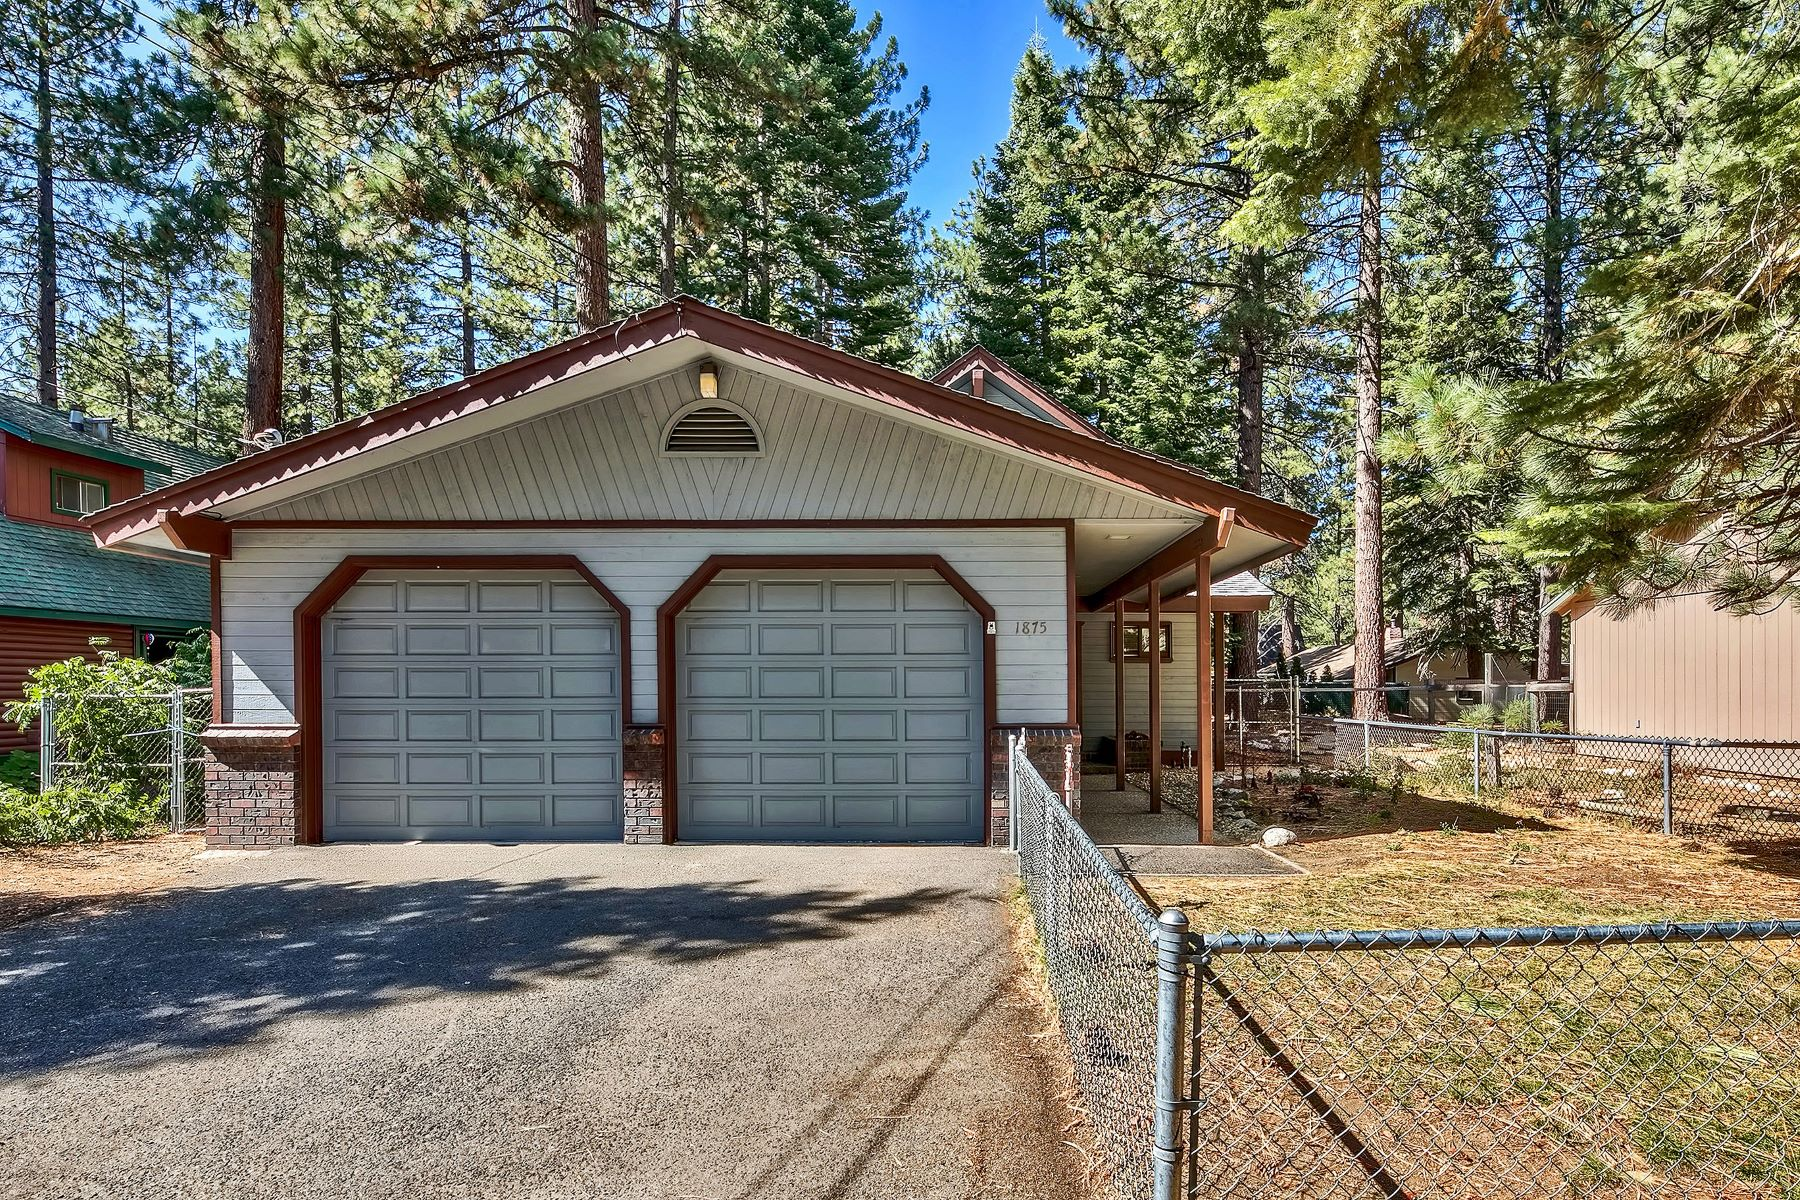 Single Family Homes for Active at 1875 13th St,South Lake Tahoe, CA 96150 1875 13th Street South Lake Tahoe, California 91711 United States